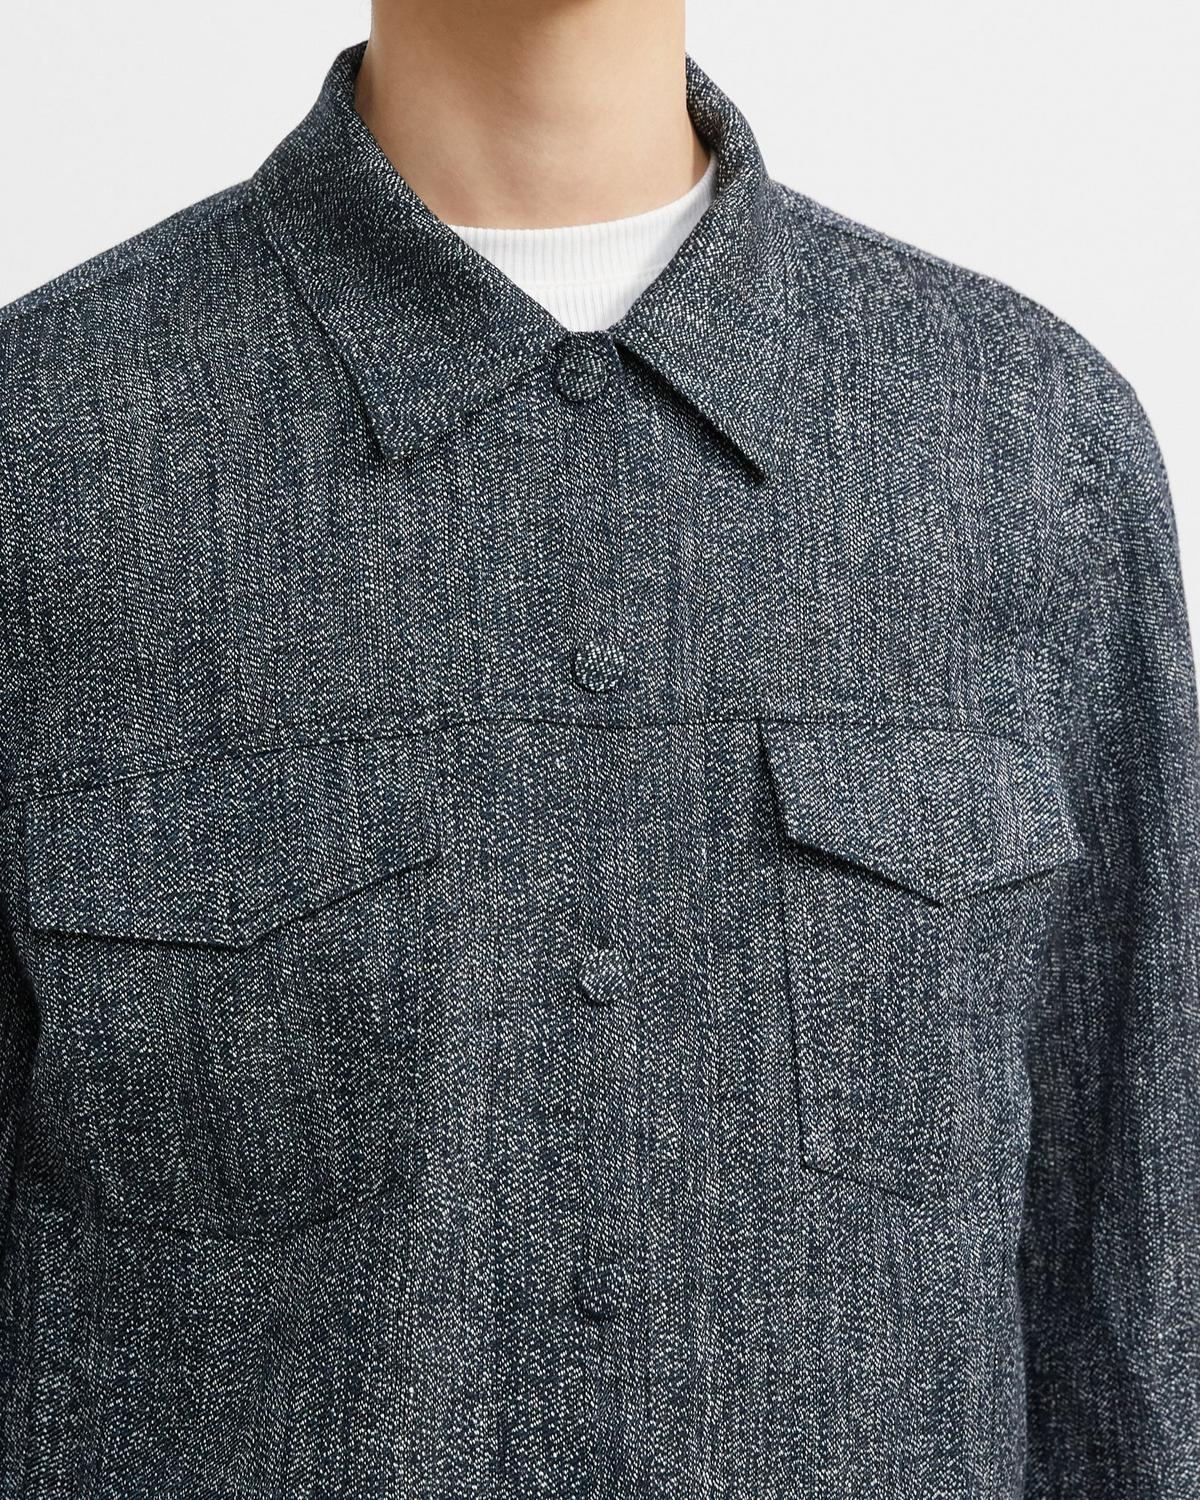 Trucker Jacket in Herringbone Melange